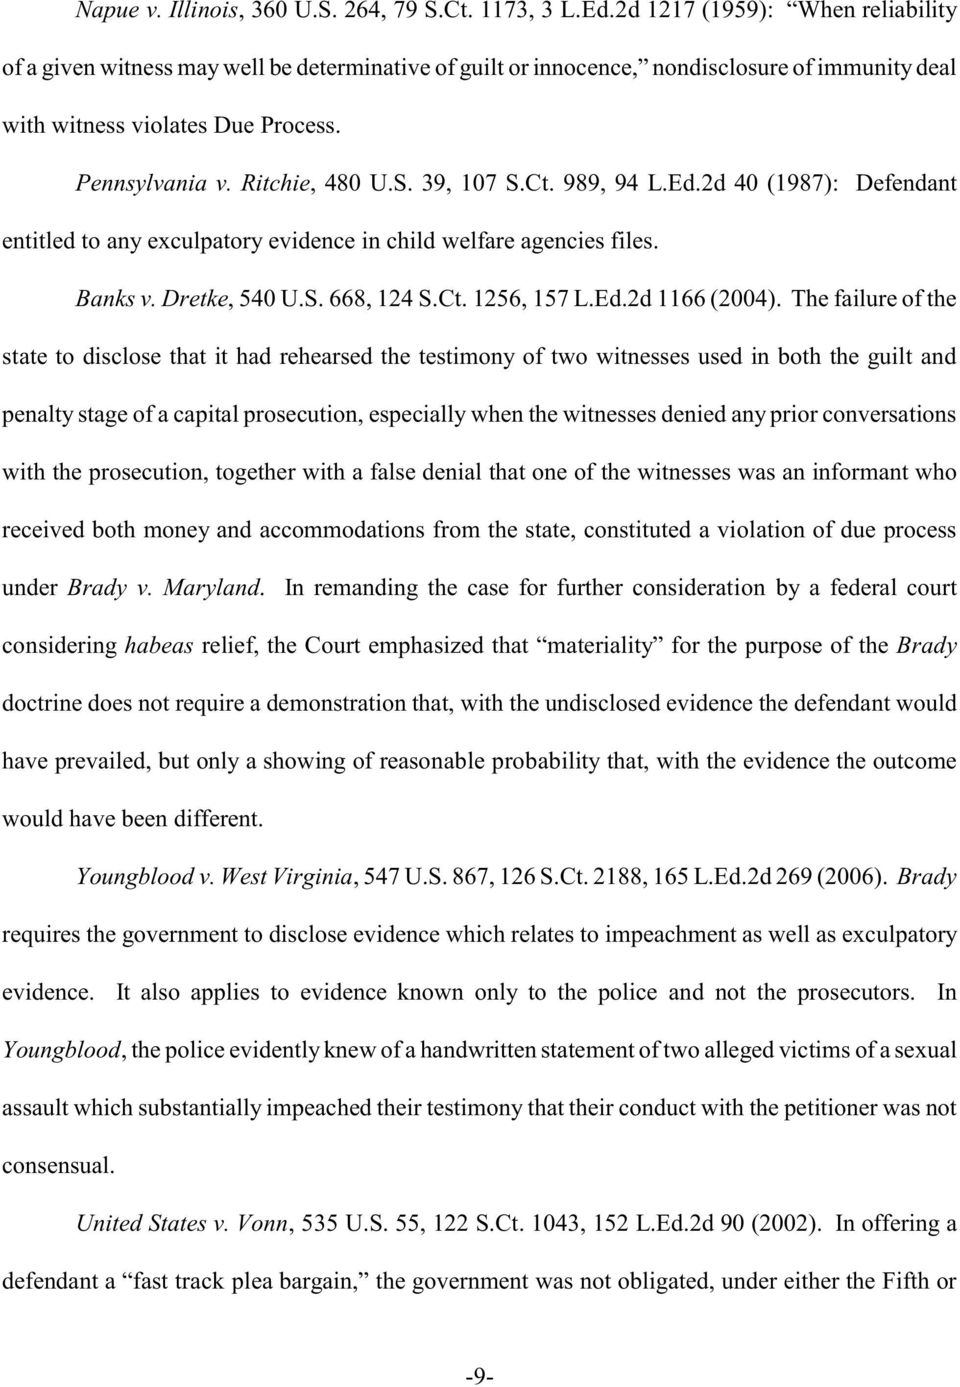 39, 107 S.Ct. 989, 94 L.Ed.2d 40 (1987): Defendant entitled to any exculpatory evidence in child welfare agencies files. Banks v. Dretke, 540 U.S. 668, 124 S.Ct. 1256, 157 L.Ed.2d 1166 (2004).